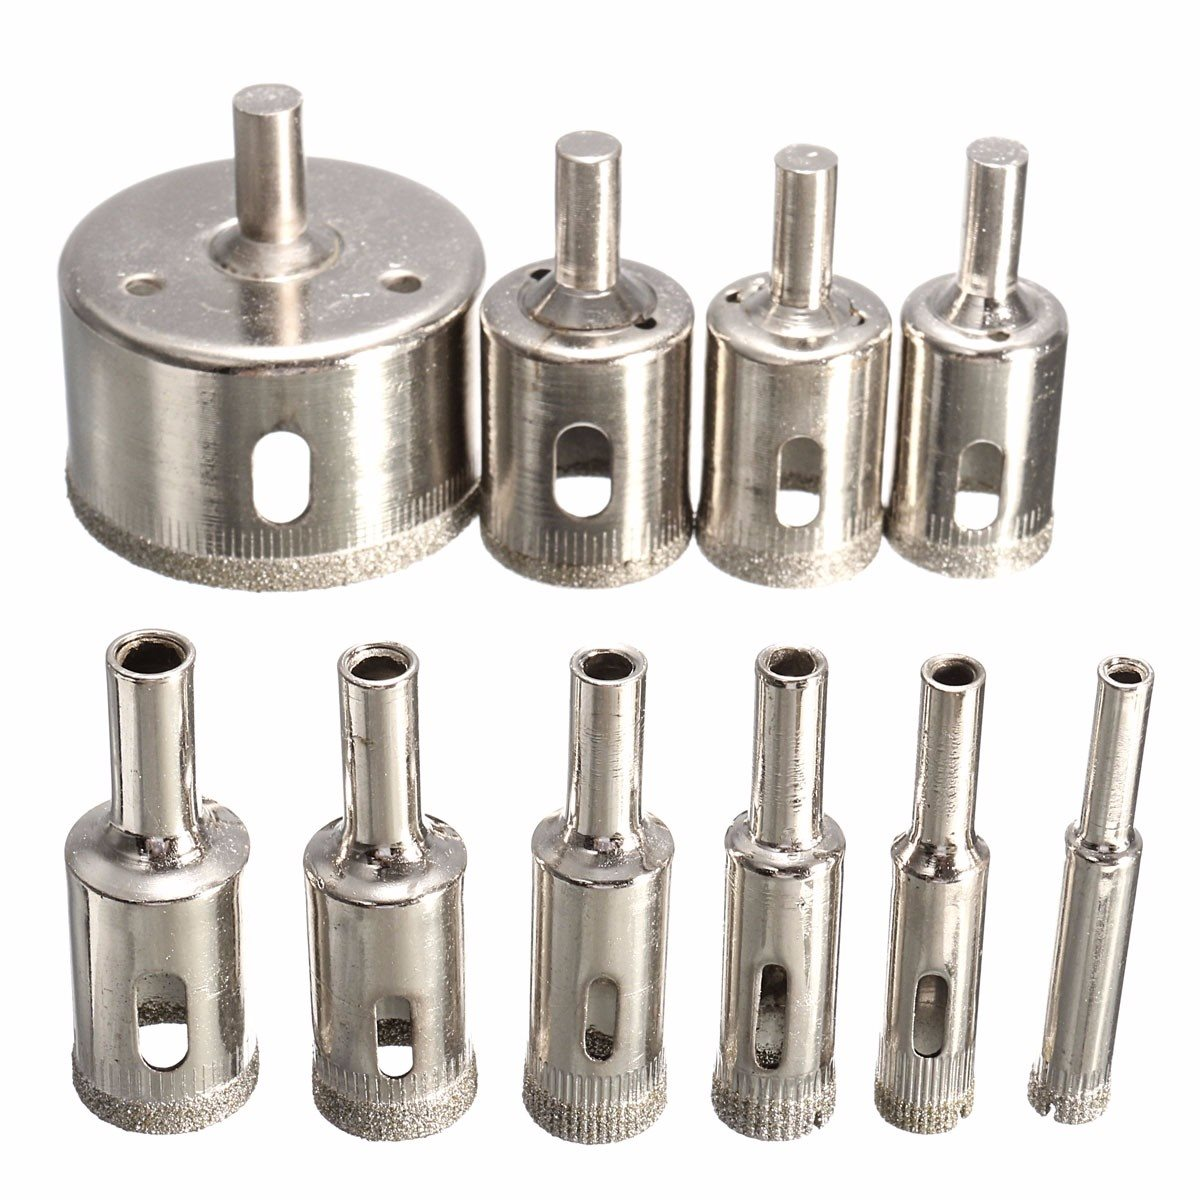 Hot Sale 10PCS/set 8-50mm Diamond Coated Core Hole Saw Drill Bits Tool Cutter For Tiles Marble Glass Granite Drilling Best Price 14pcs set diamond coated hole saw core drill bit tile marble glass ceramic set 3 70mm durable in use metal drilling best price